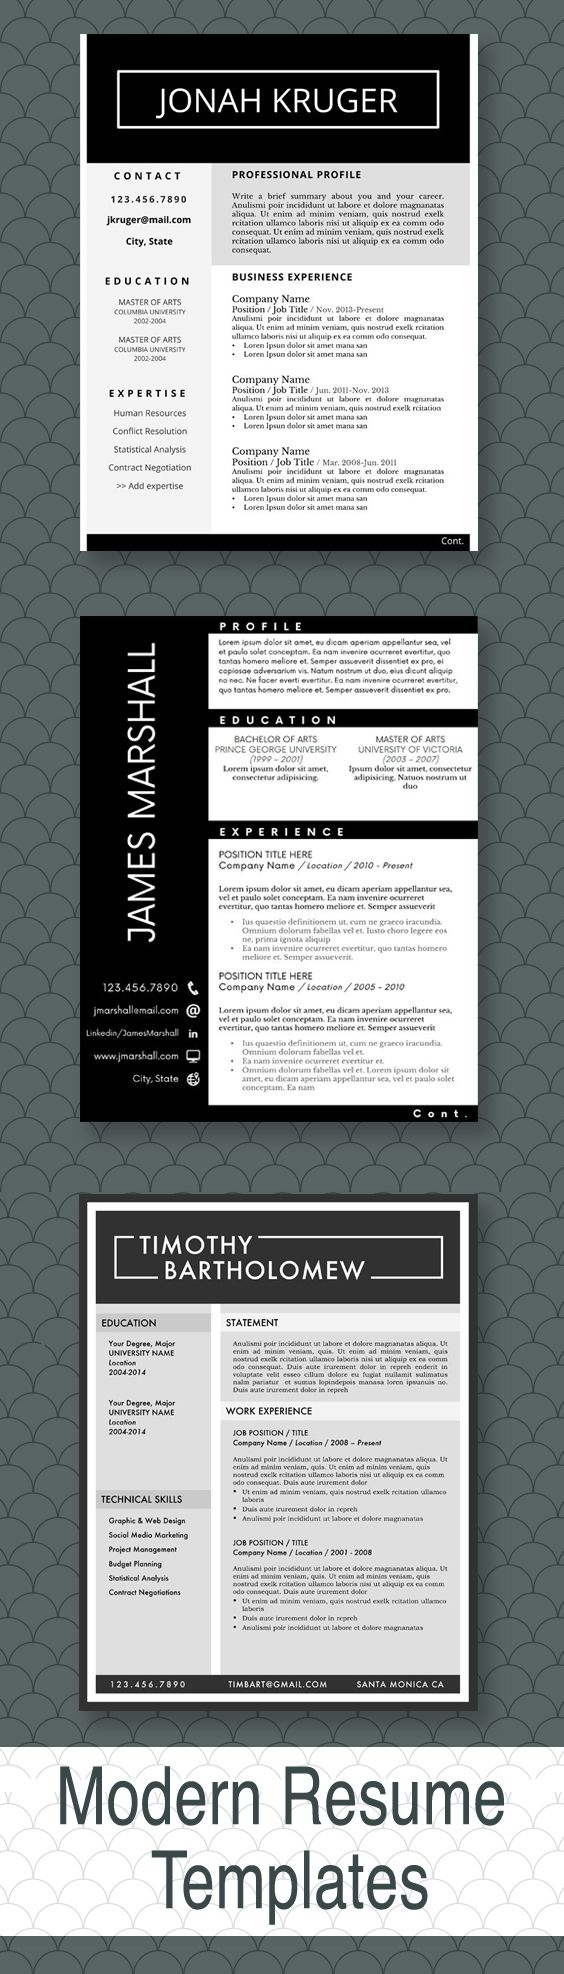 Eye Catching Resume Templates Love These Resumes Totally Eyecatching Resume  Pinterest